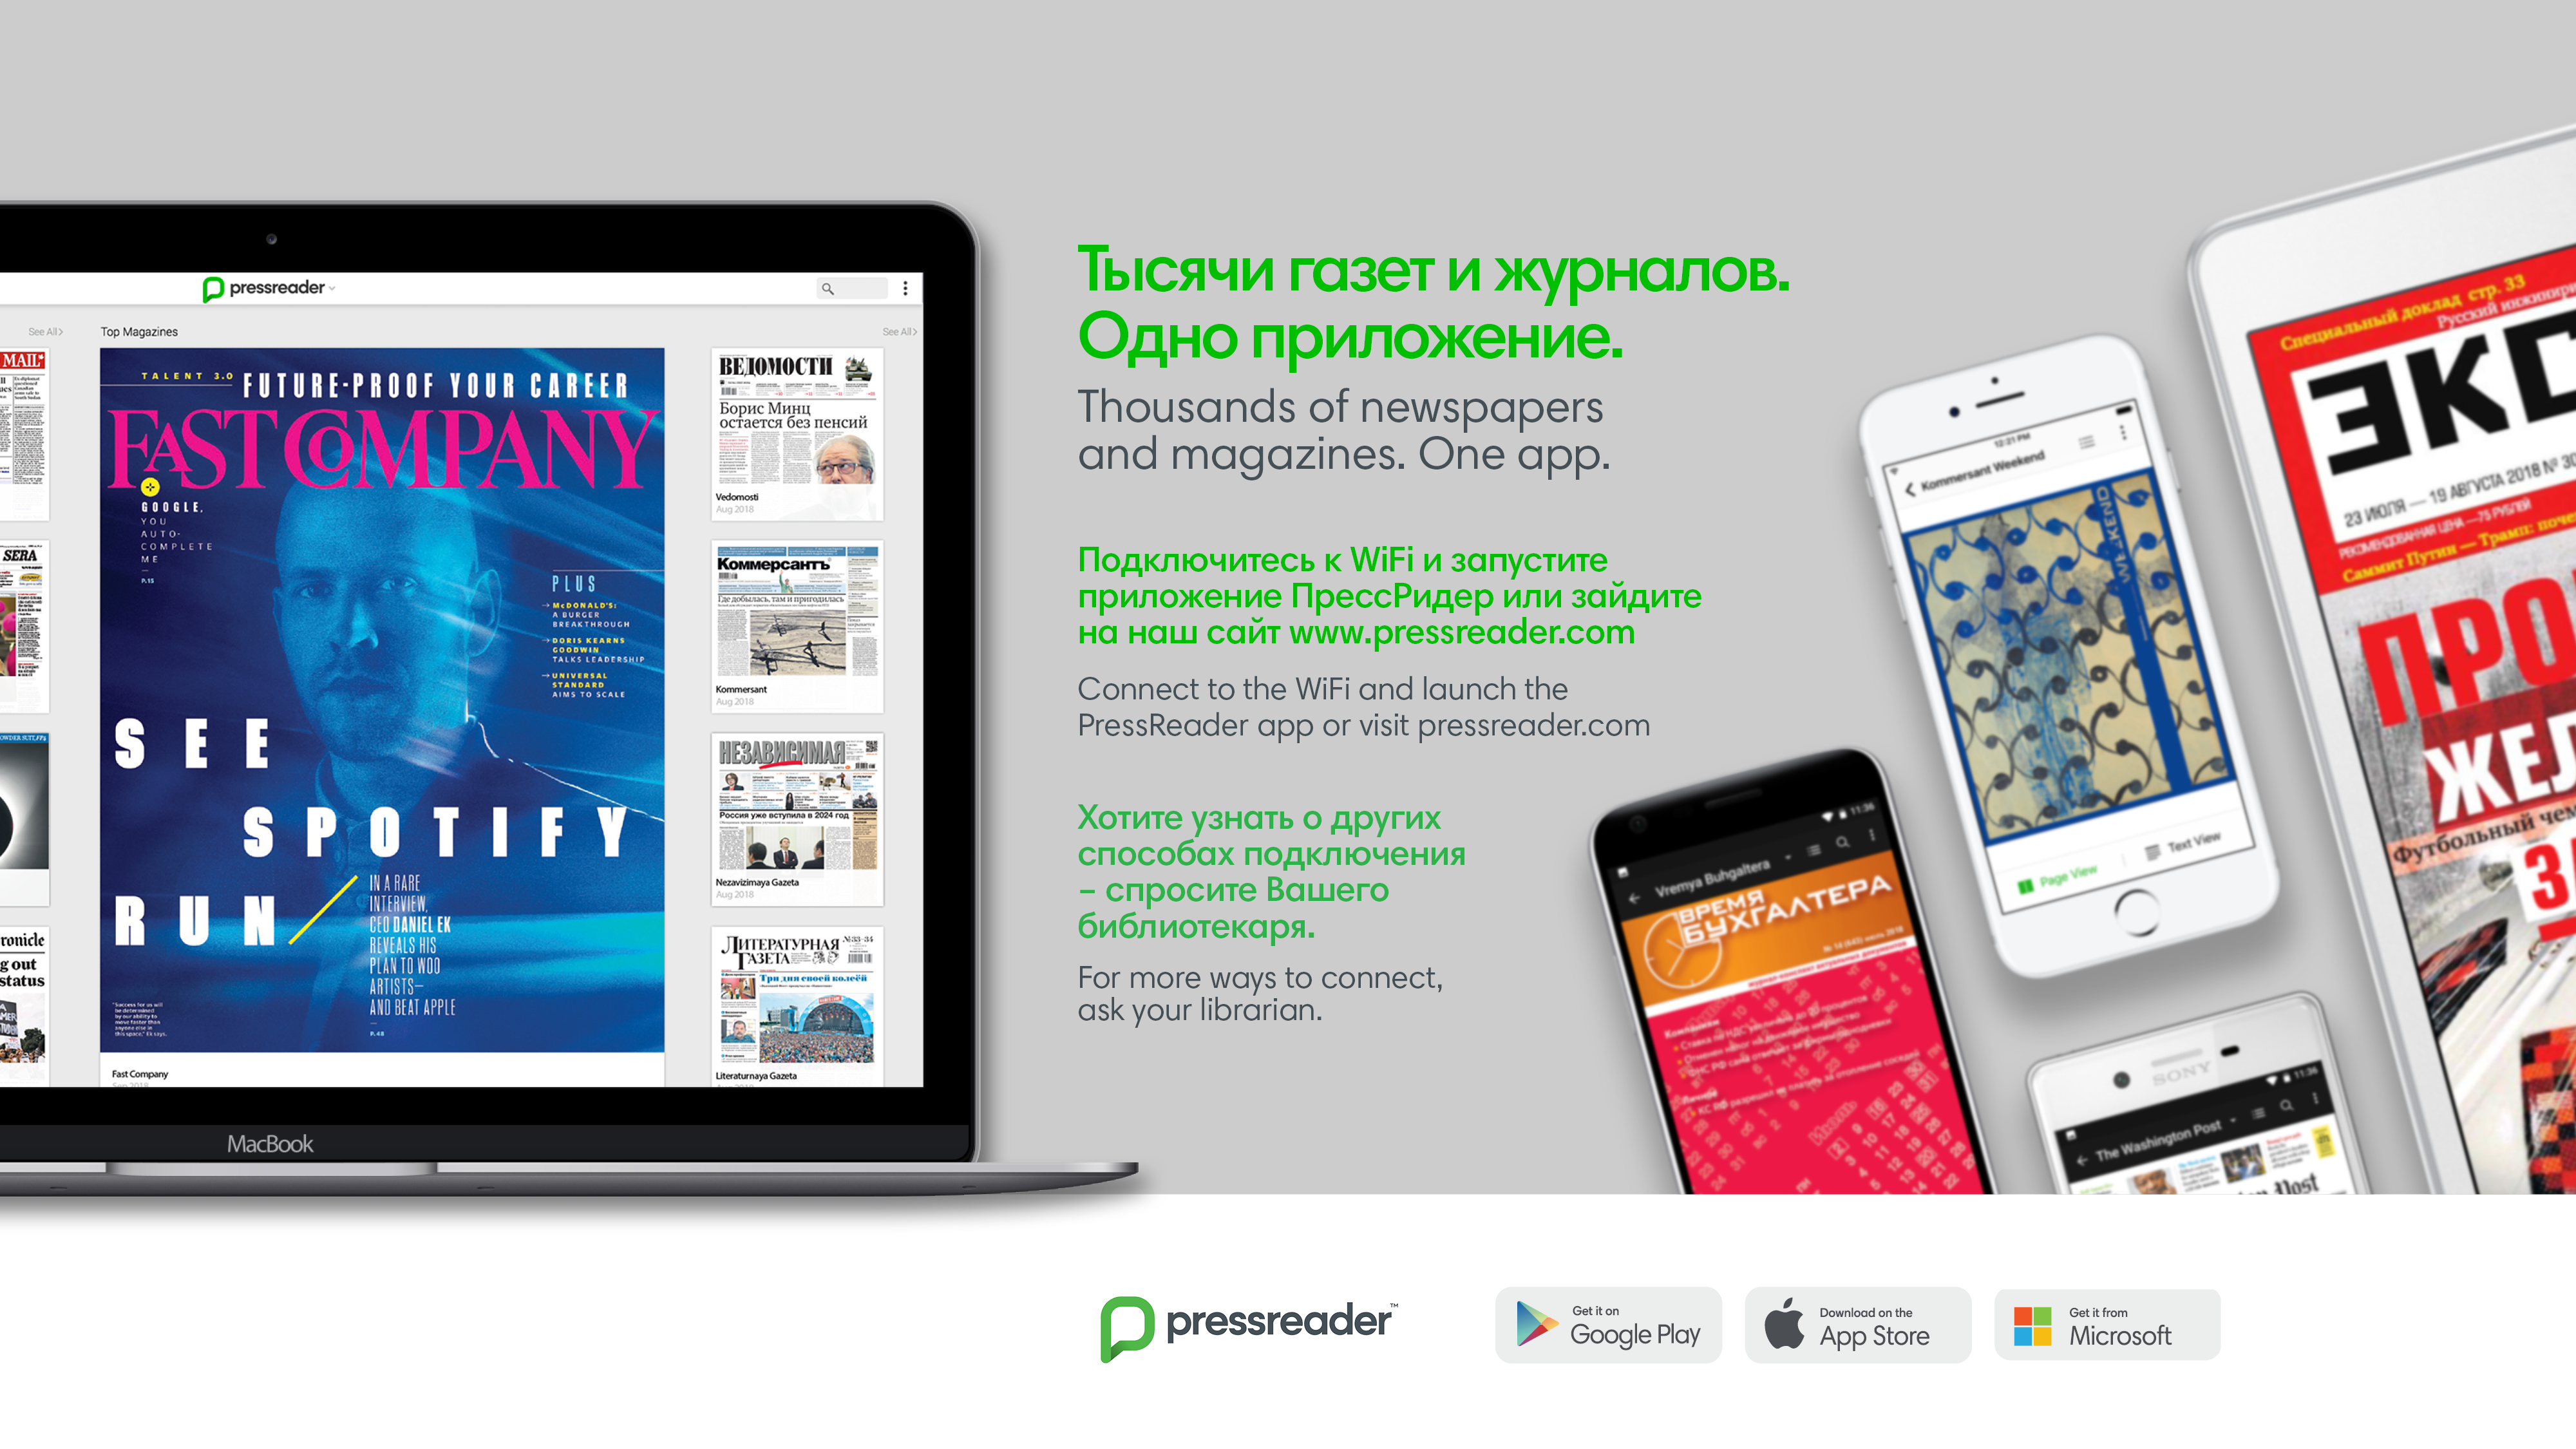 PressReader poster. Magazine and newspapers in Russian and English displayed on tablets, phones and laptops.